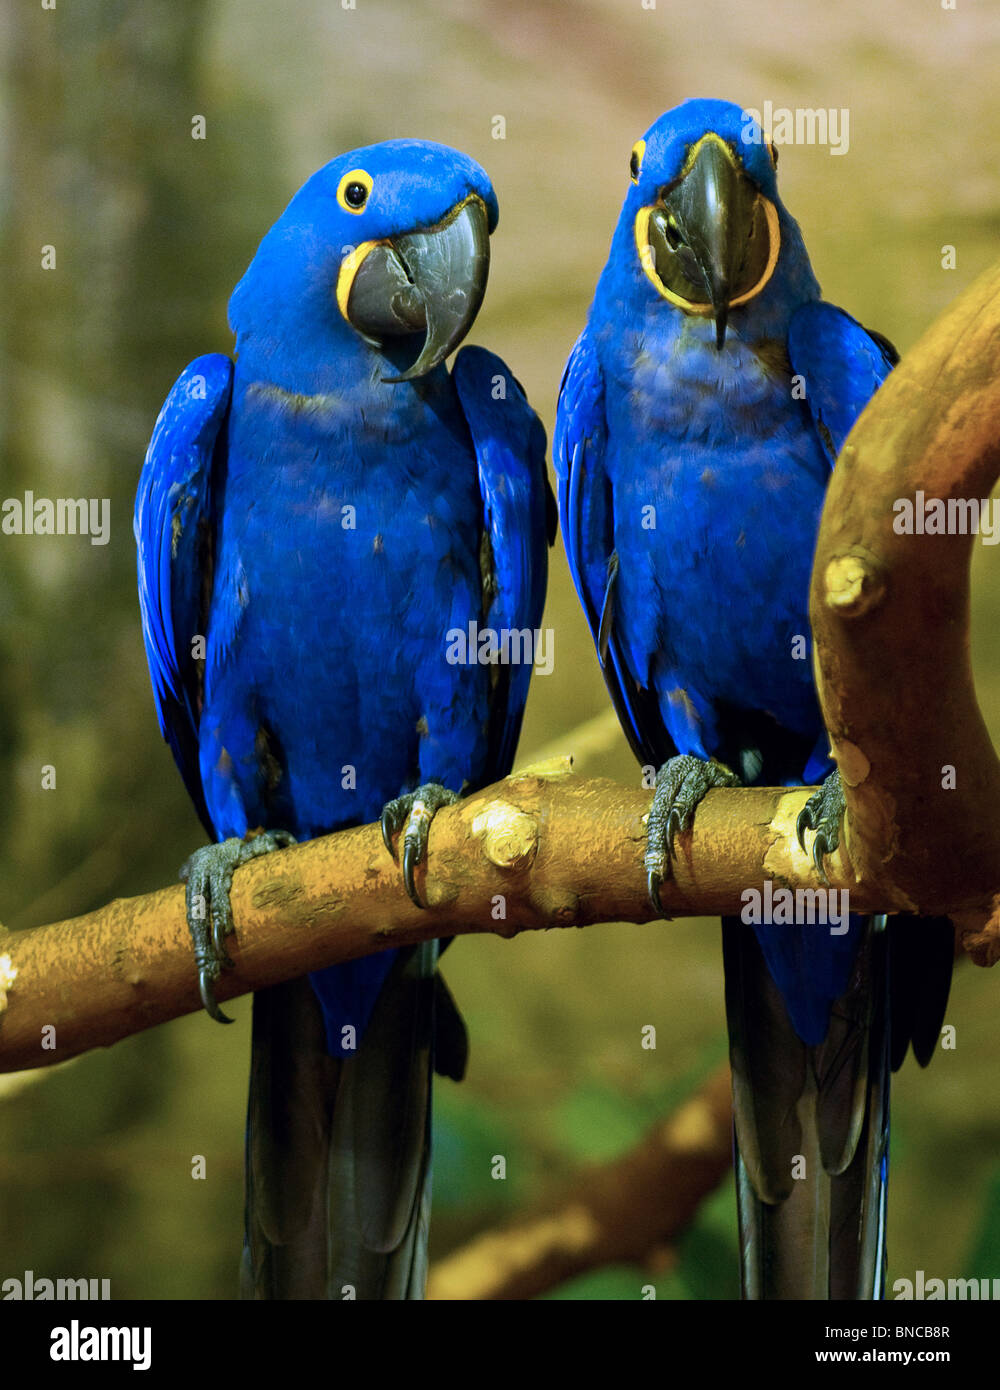 Blue Hyacinth Macaw Parrot Stock Photo